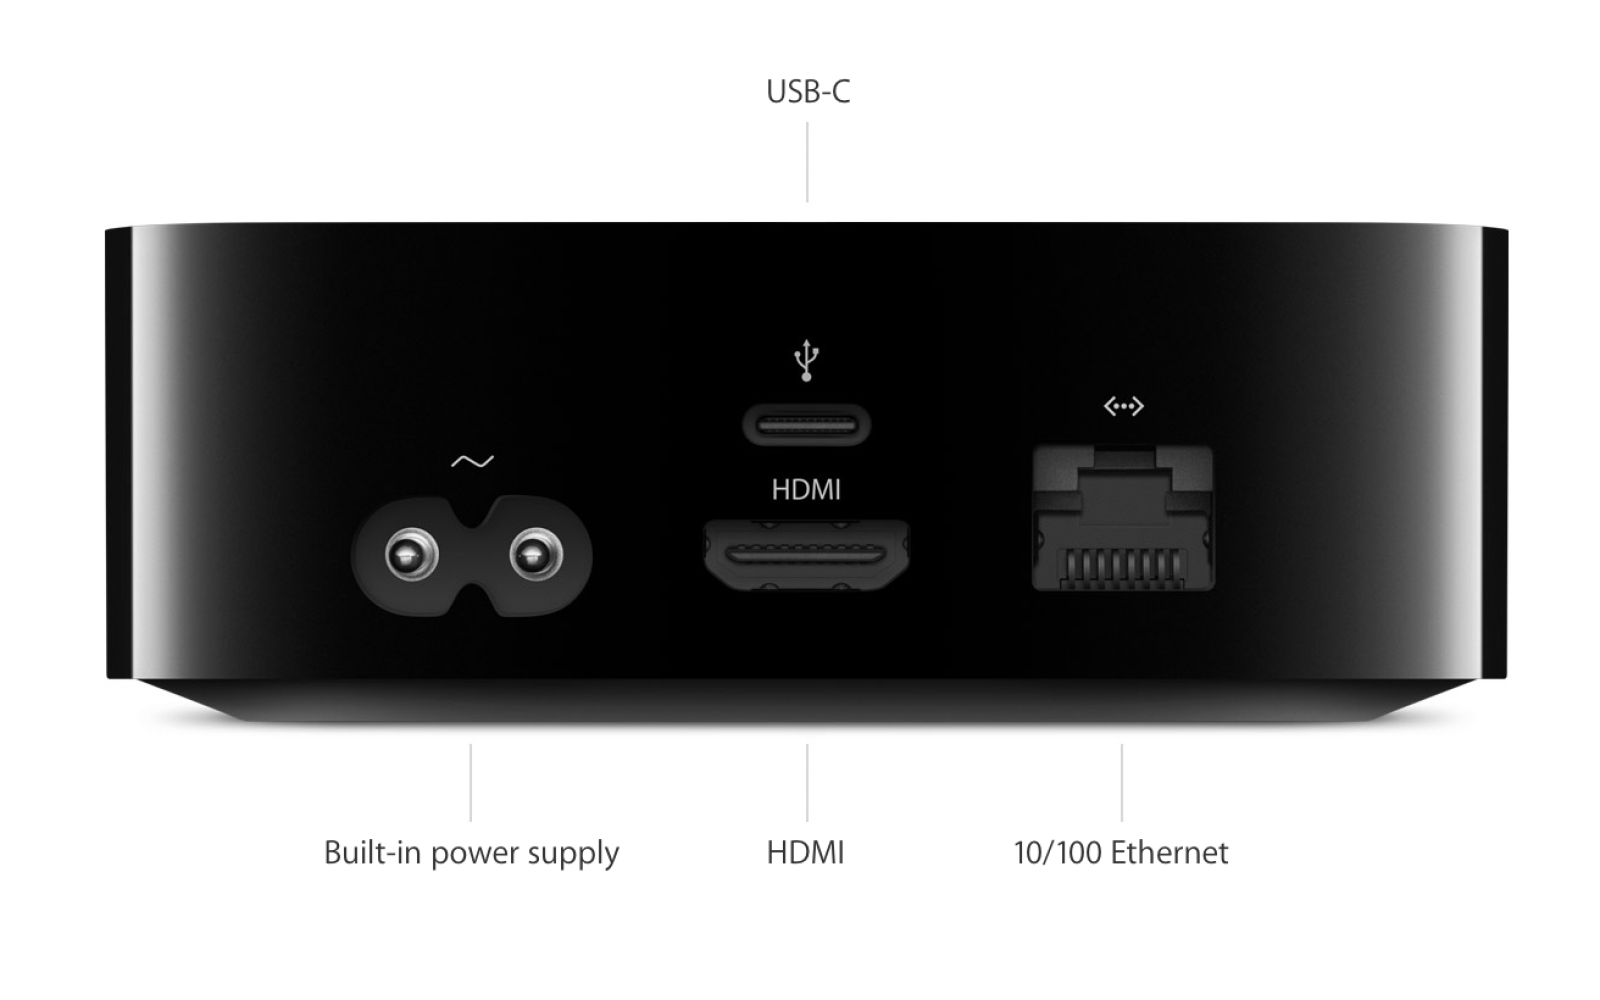 New Apple TV has 2 GB RAM, included 802.11ac WiFi is faster than its ...